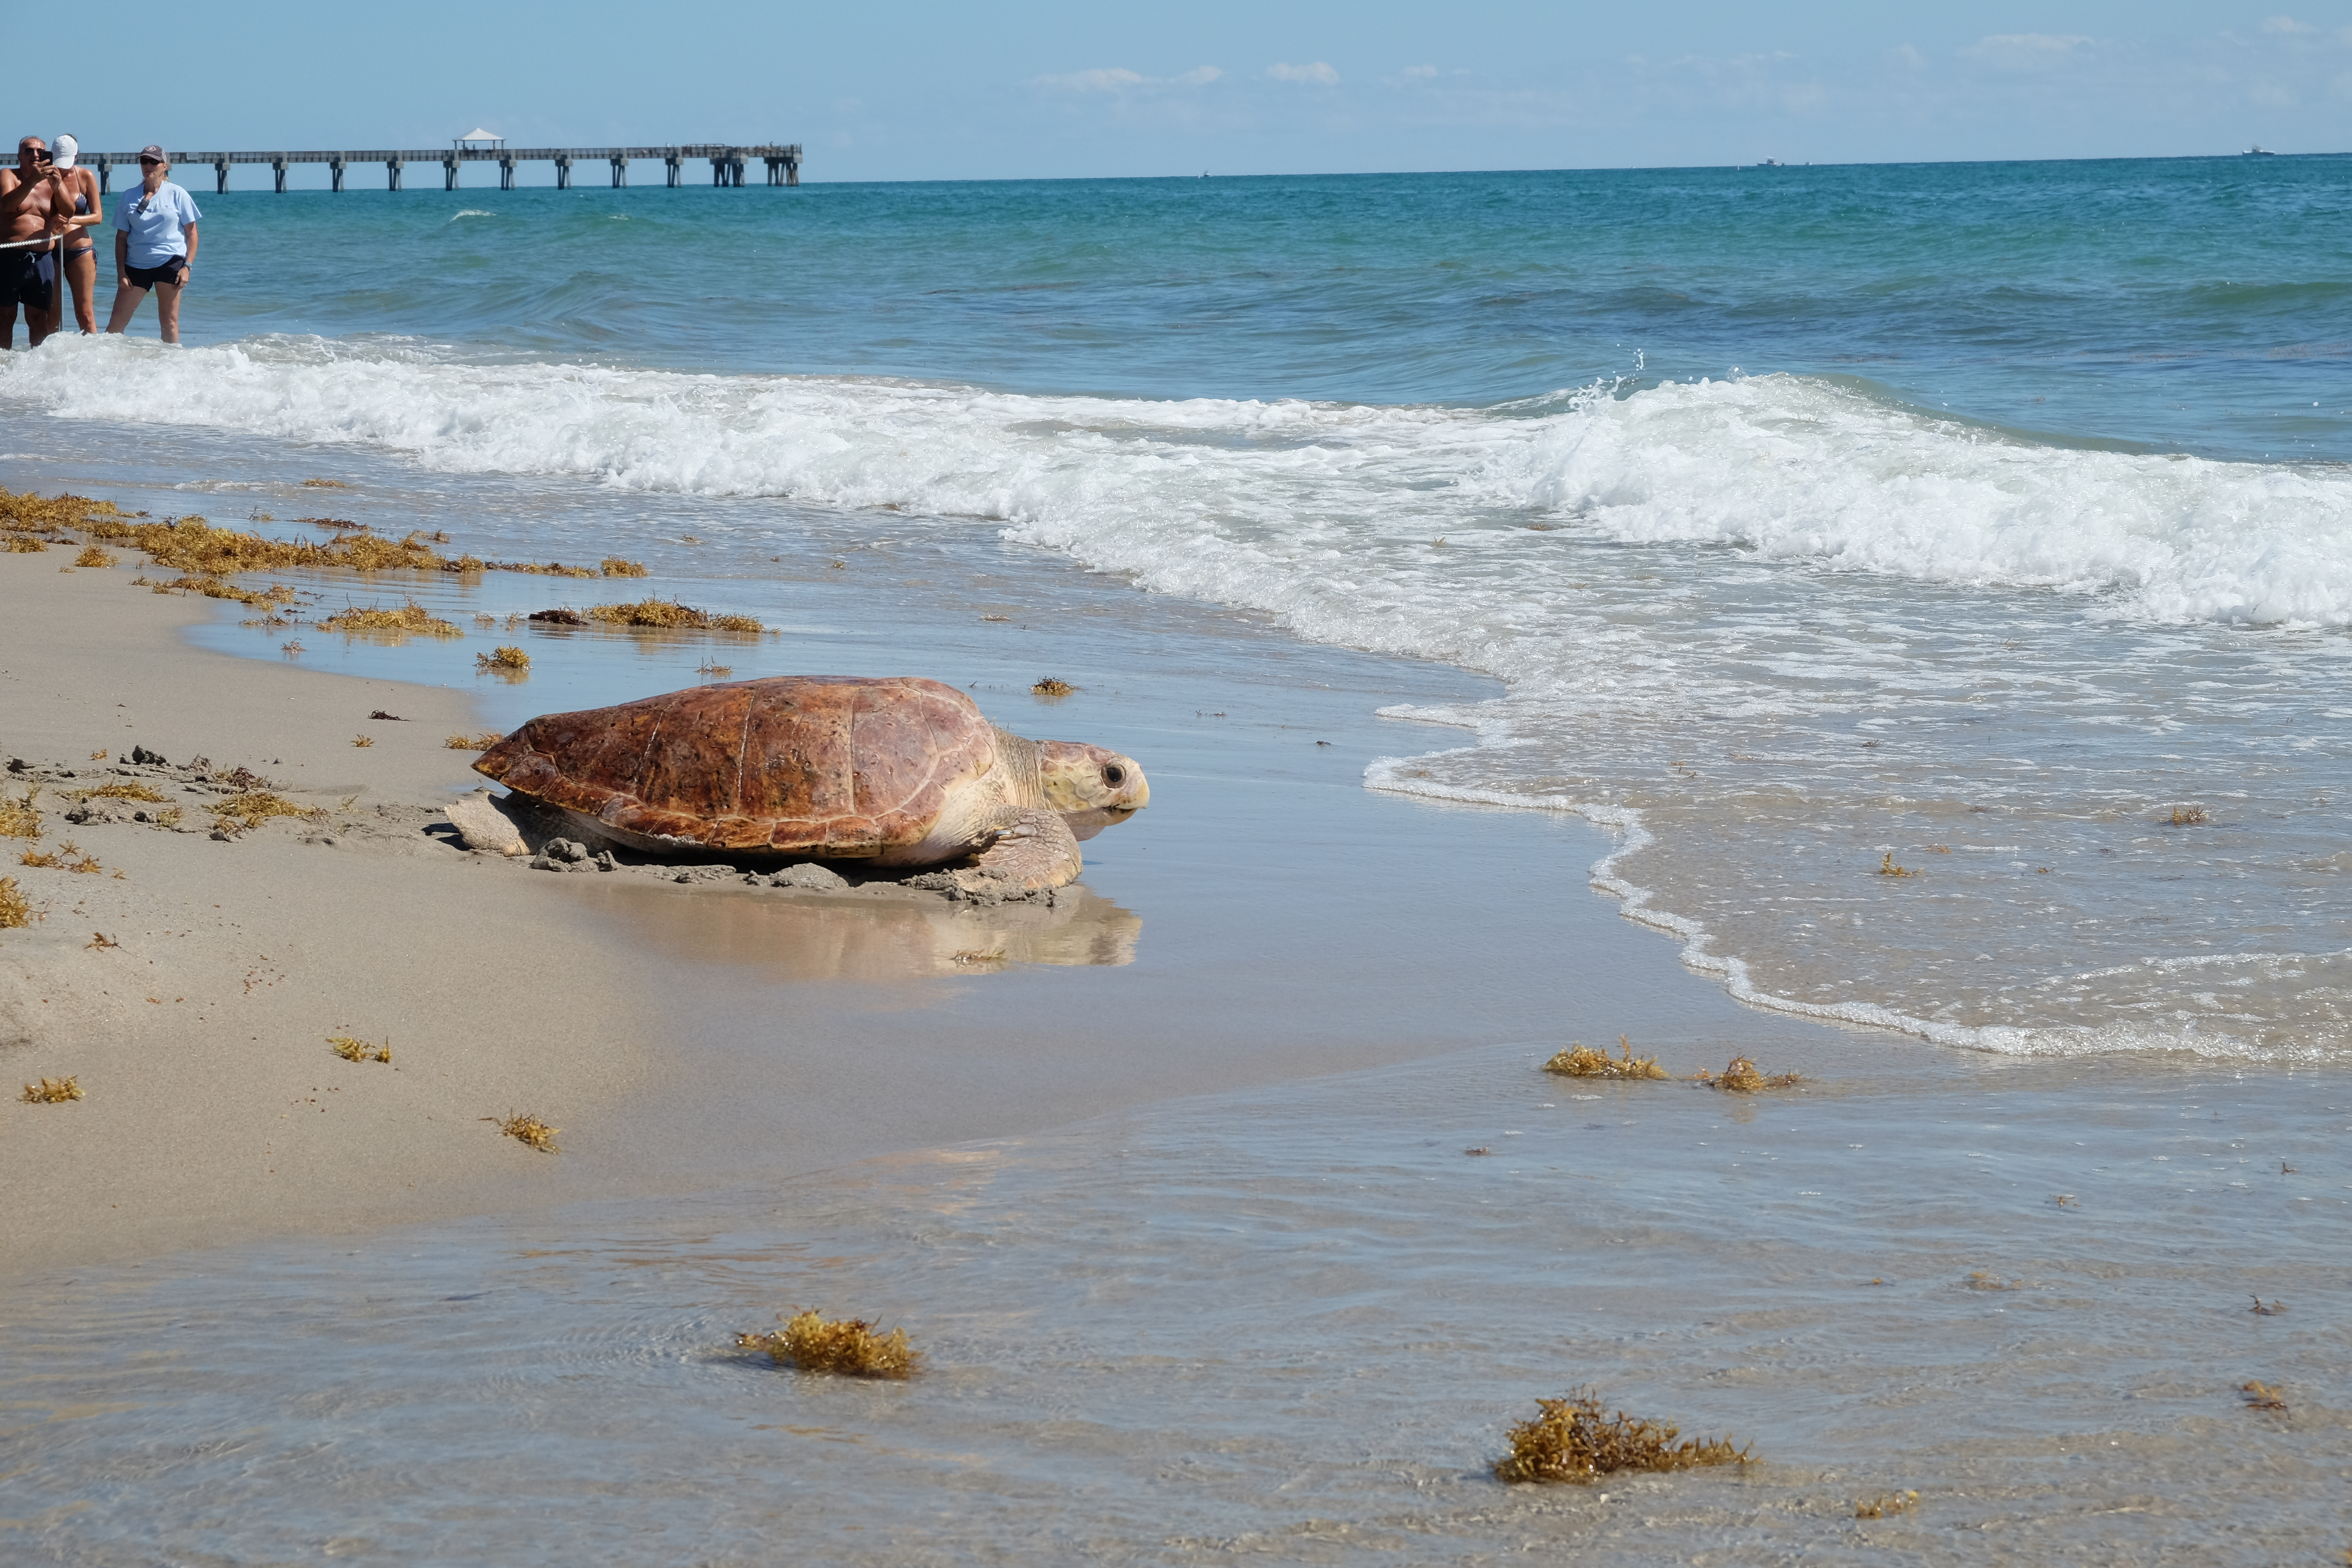 Corwin the sea turtle release